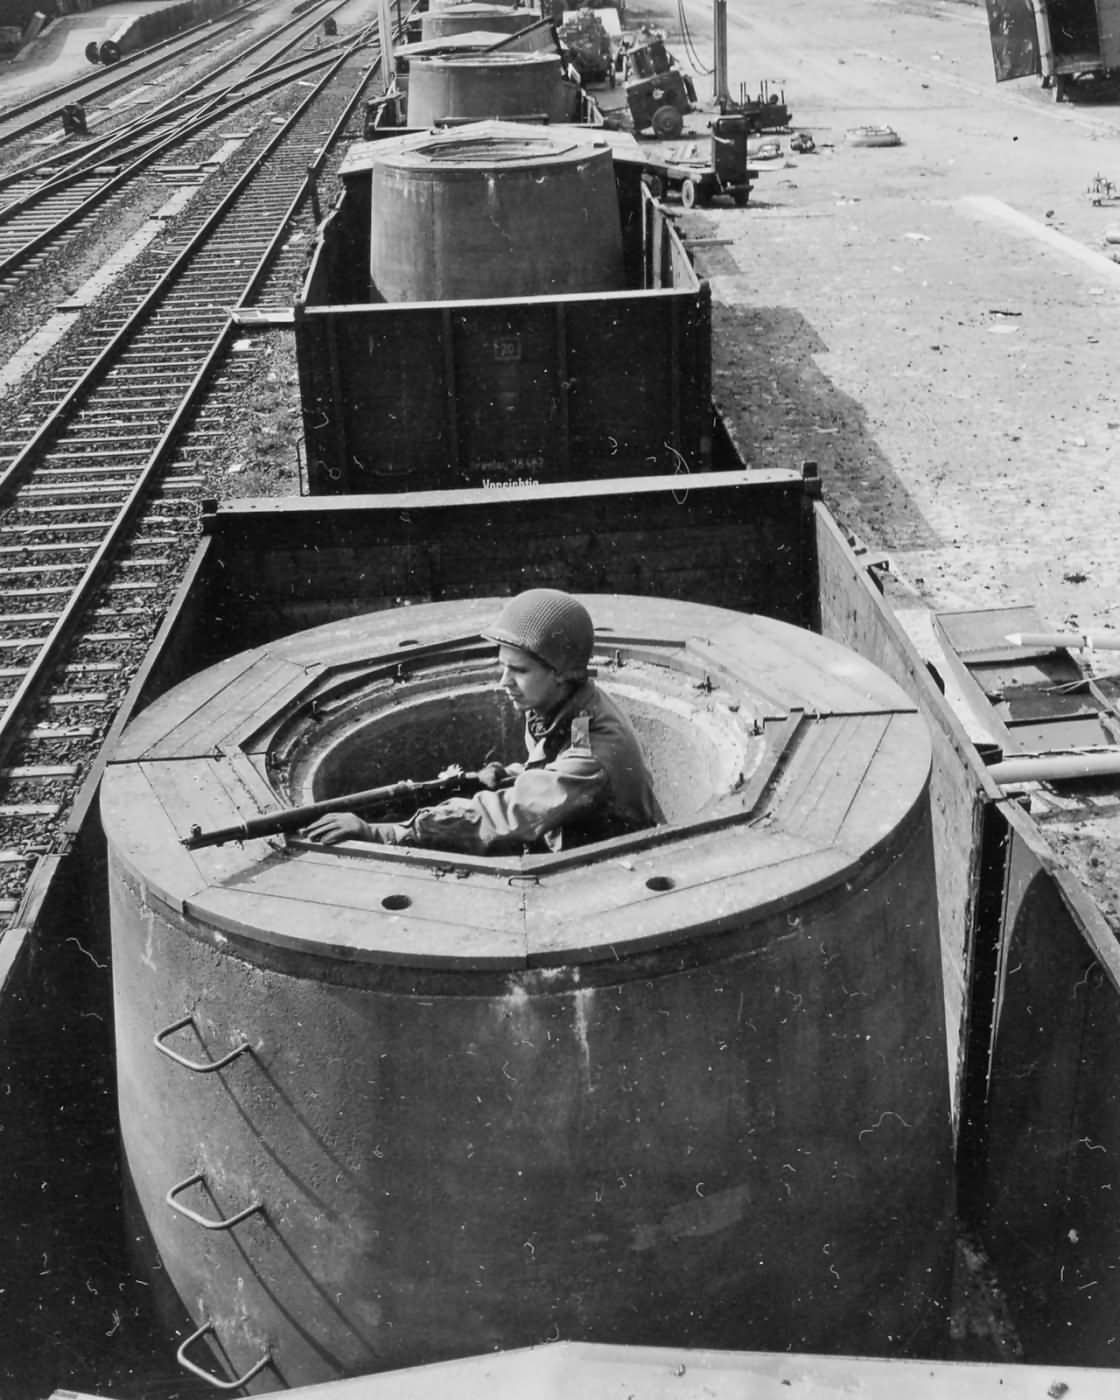 German armored train in yard at Ohringen Germany 1945